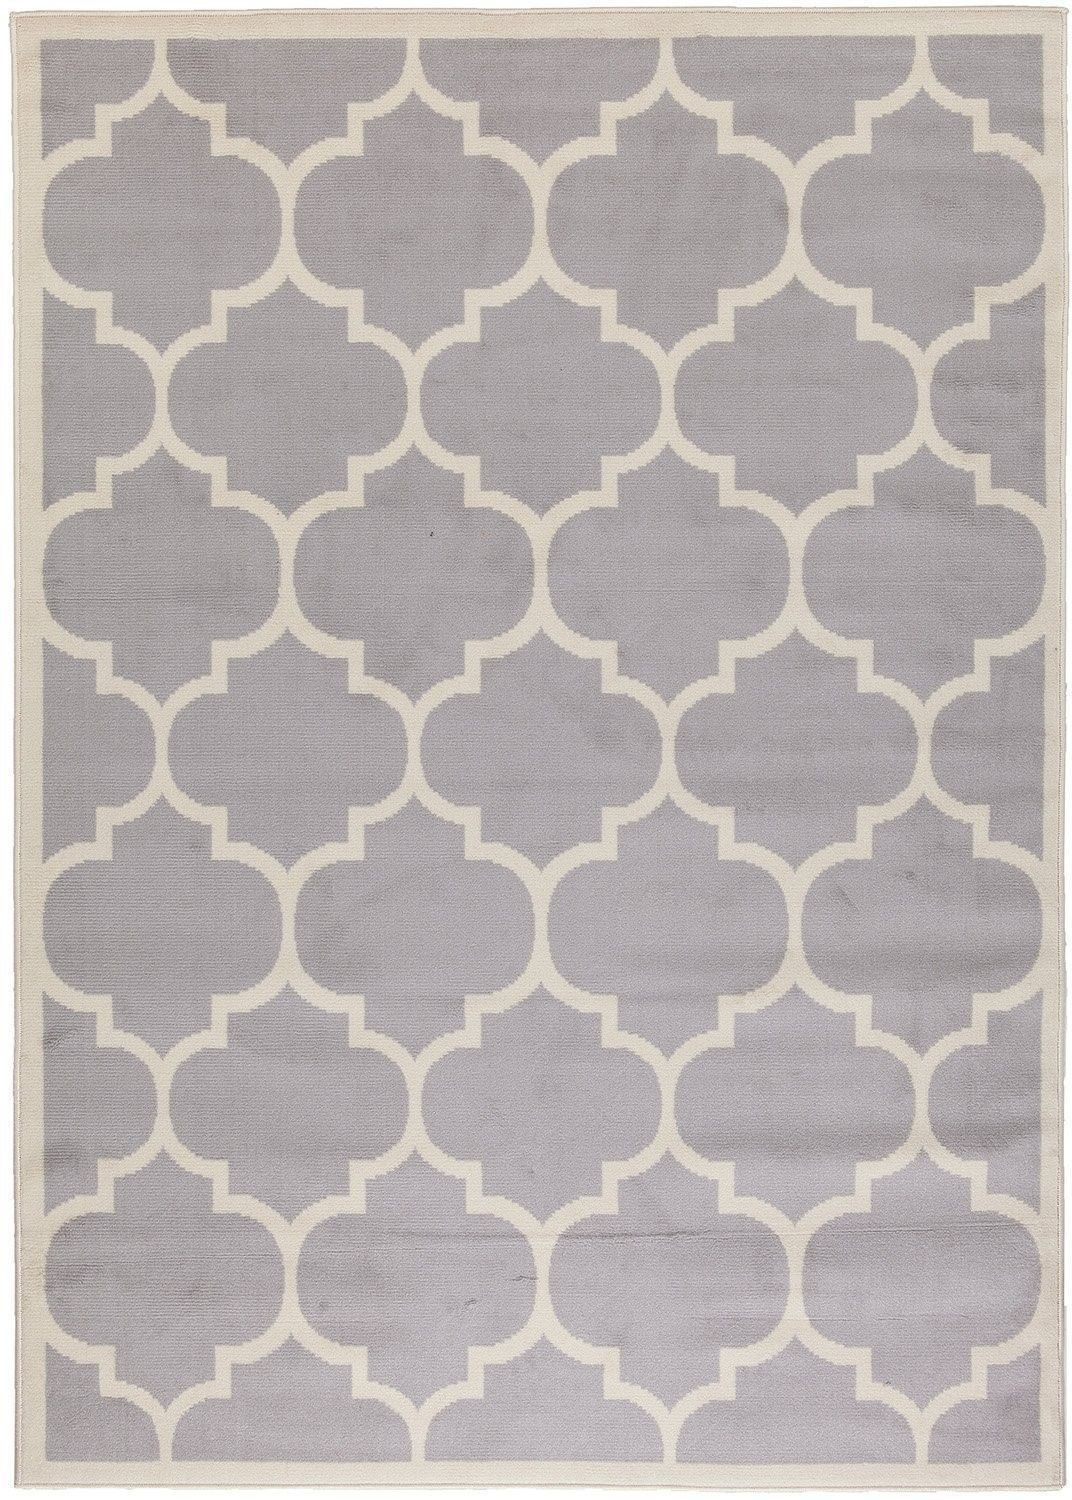 homesense vases of homesense gray area rug deco salon pinterest rugs area rugs inside homesense gray area rug